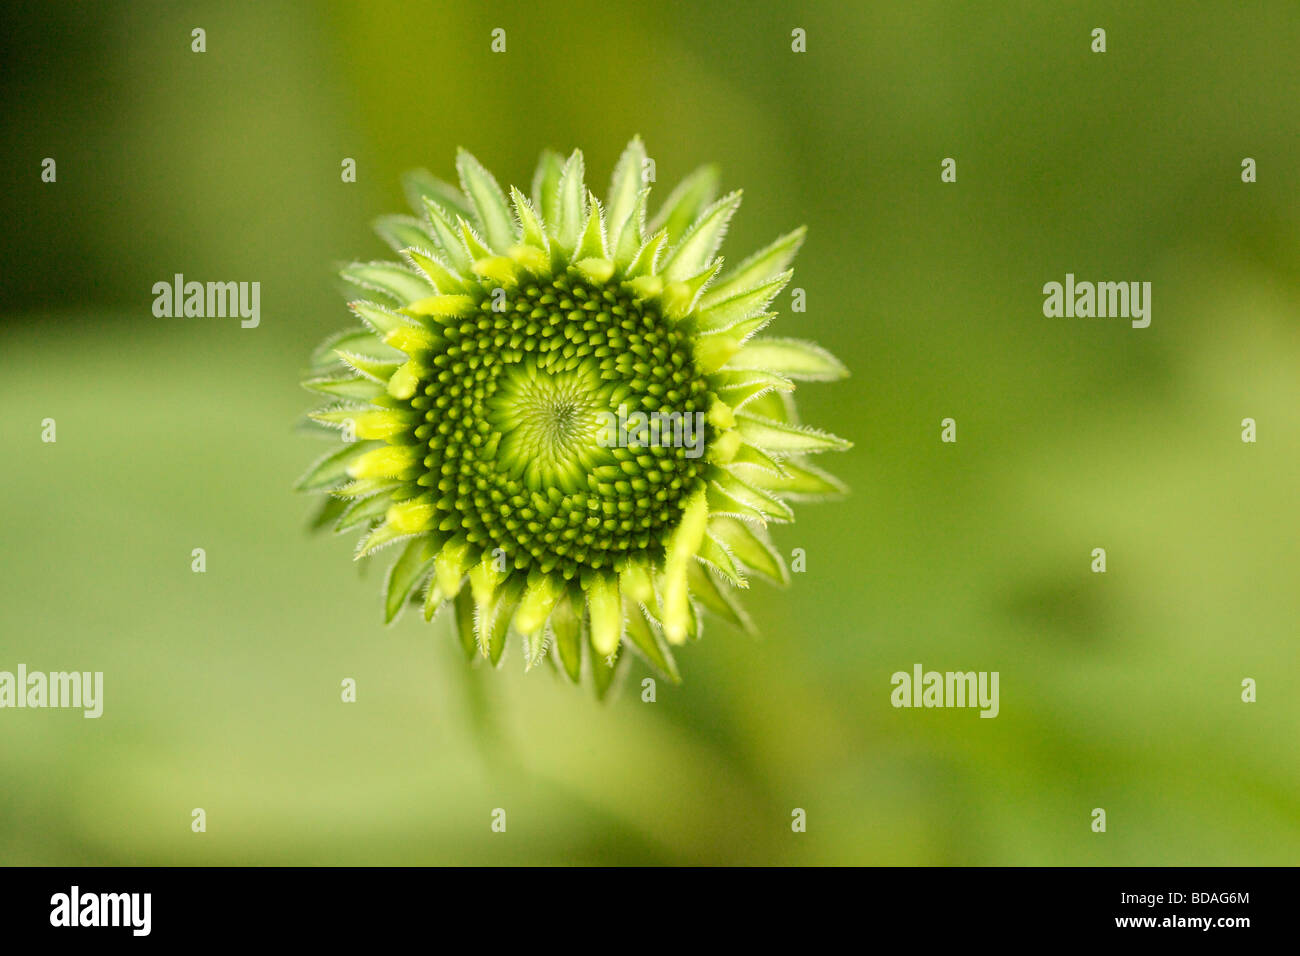 purple-coneflower-bud-BDAG6M.jpg